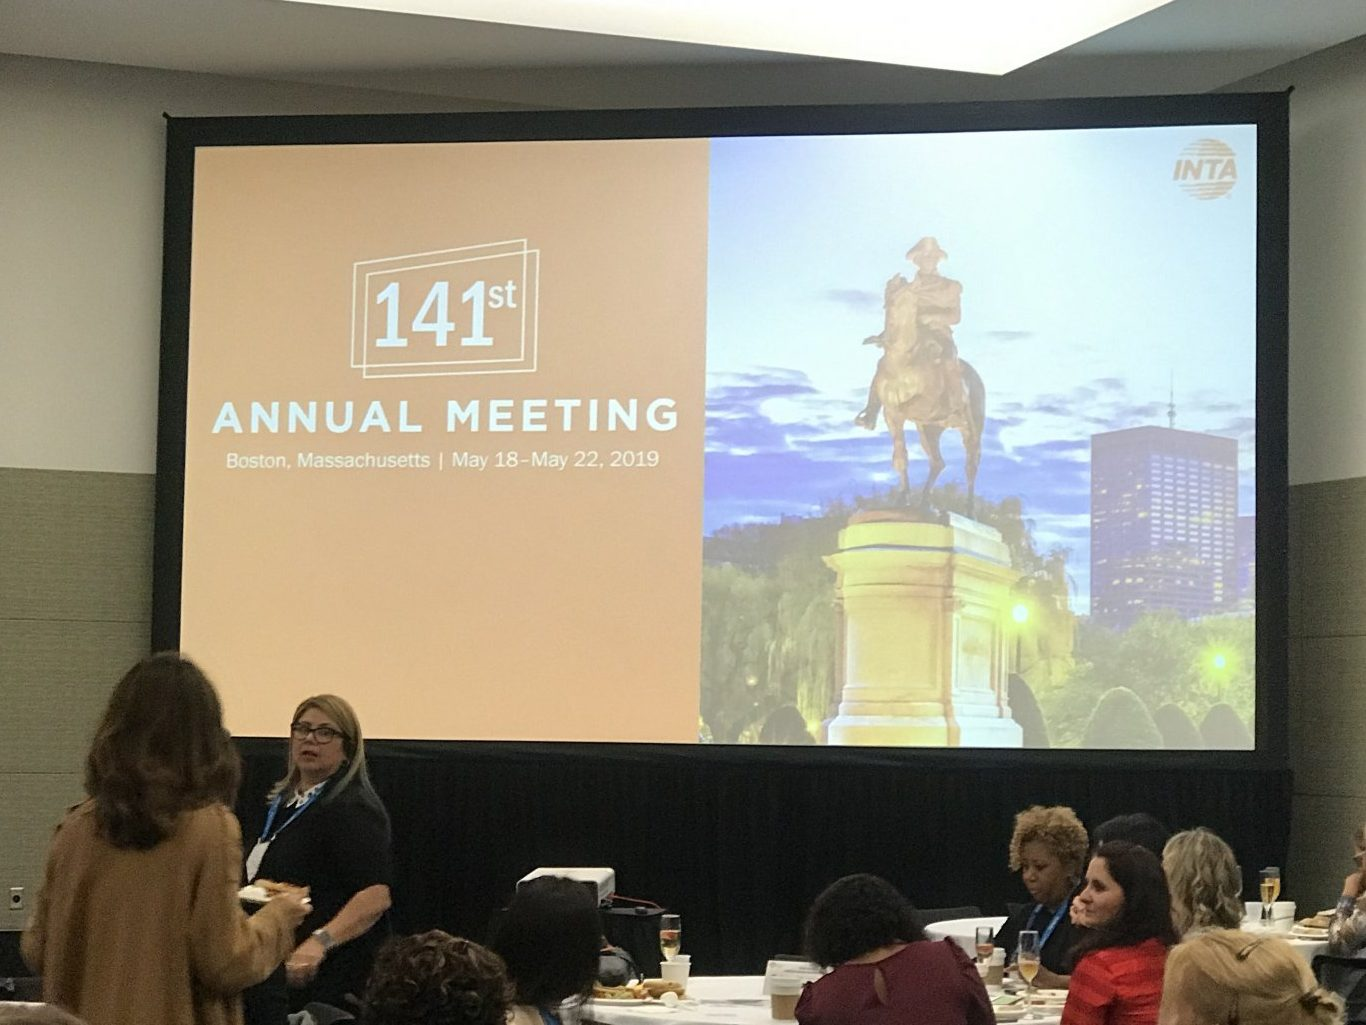 INTA Boston 2019: Tables topics or Luncheon is a must attention for trademark attorneys or patent attorneys attending the event.